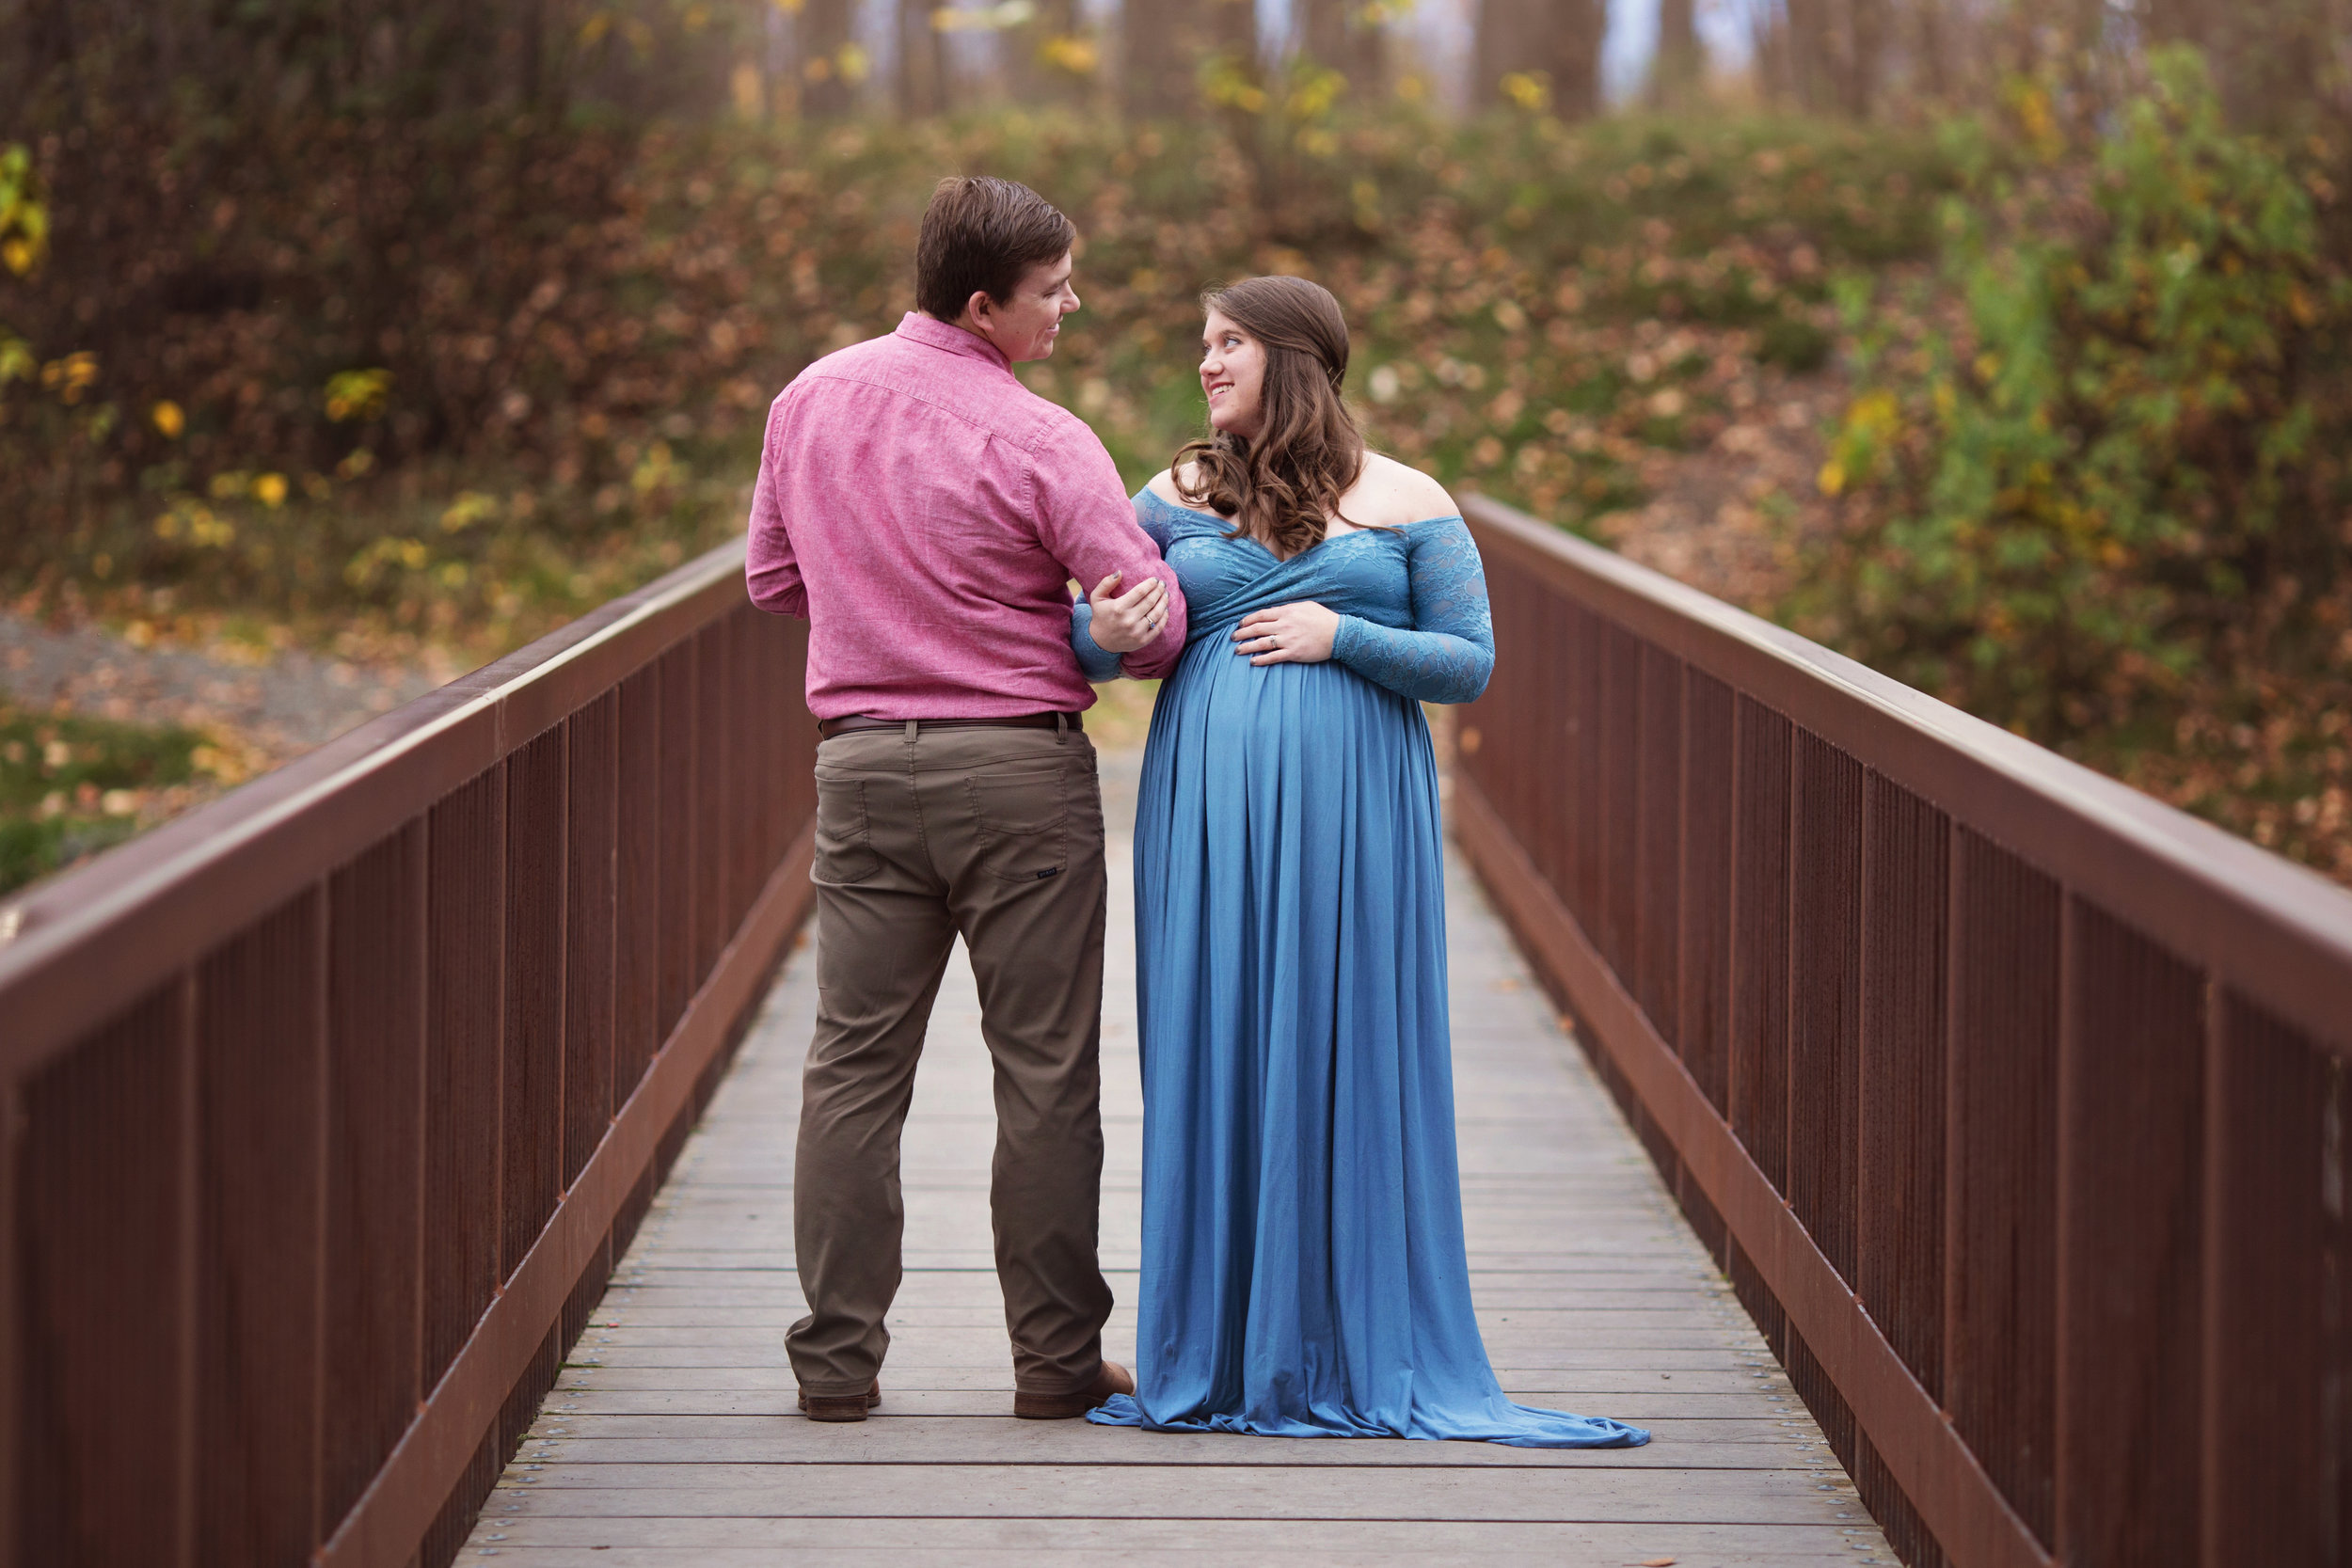 anchorage-maternity-photographer-1.jpg